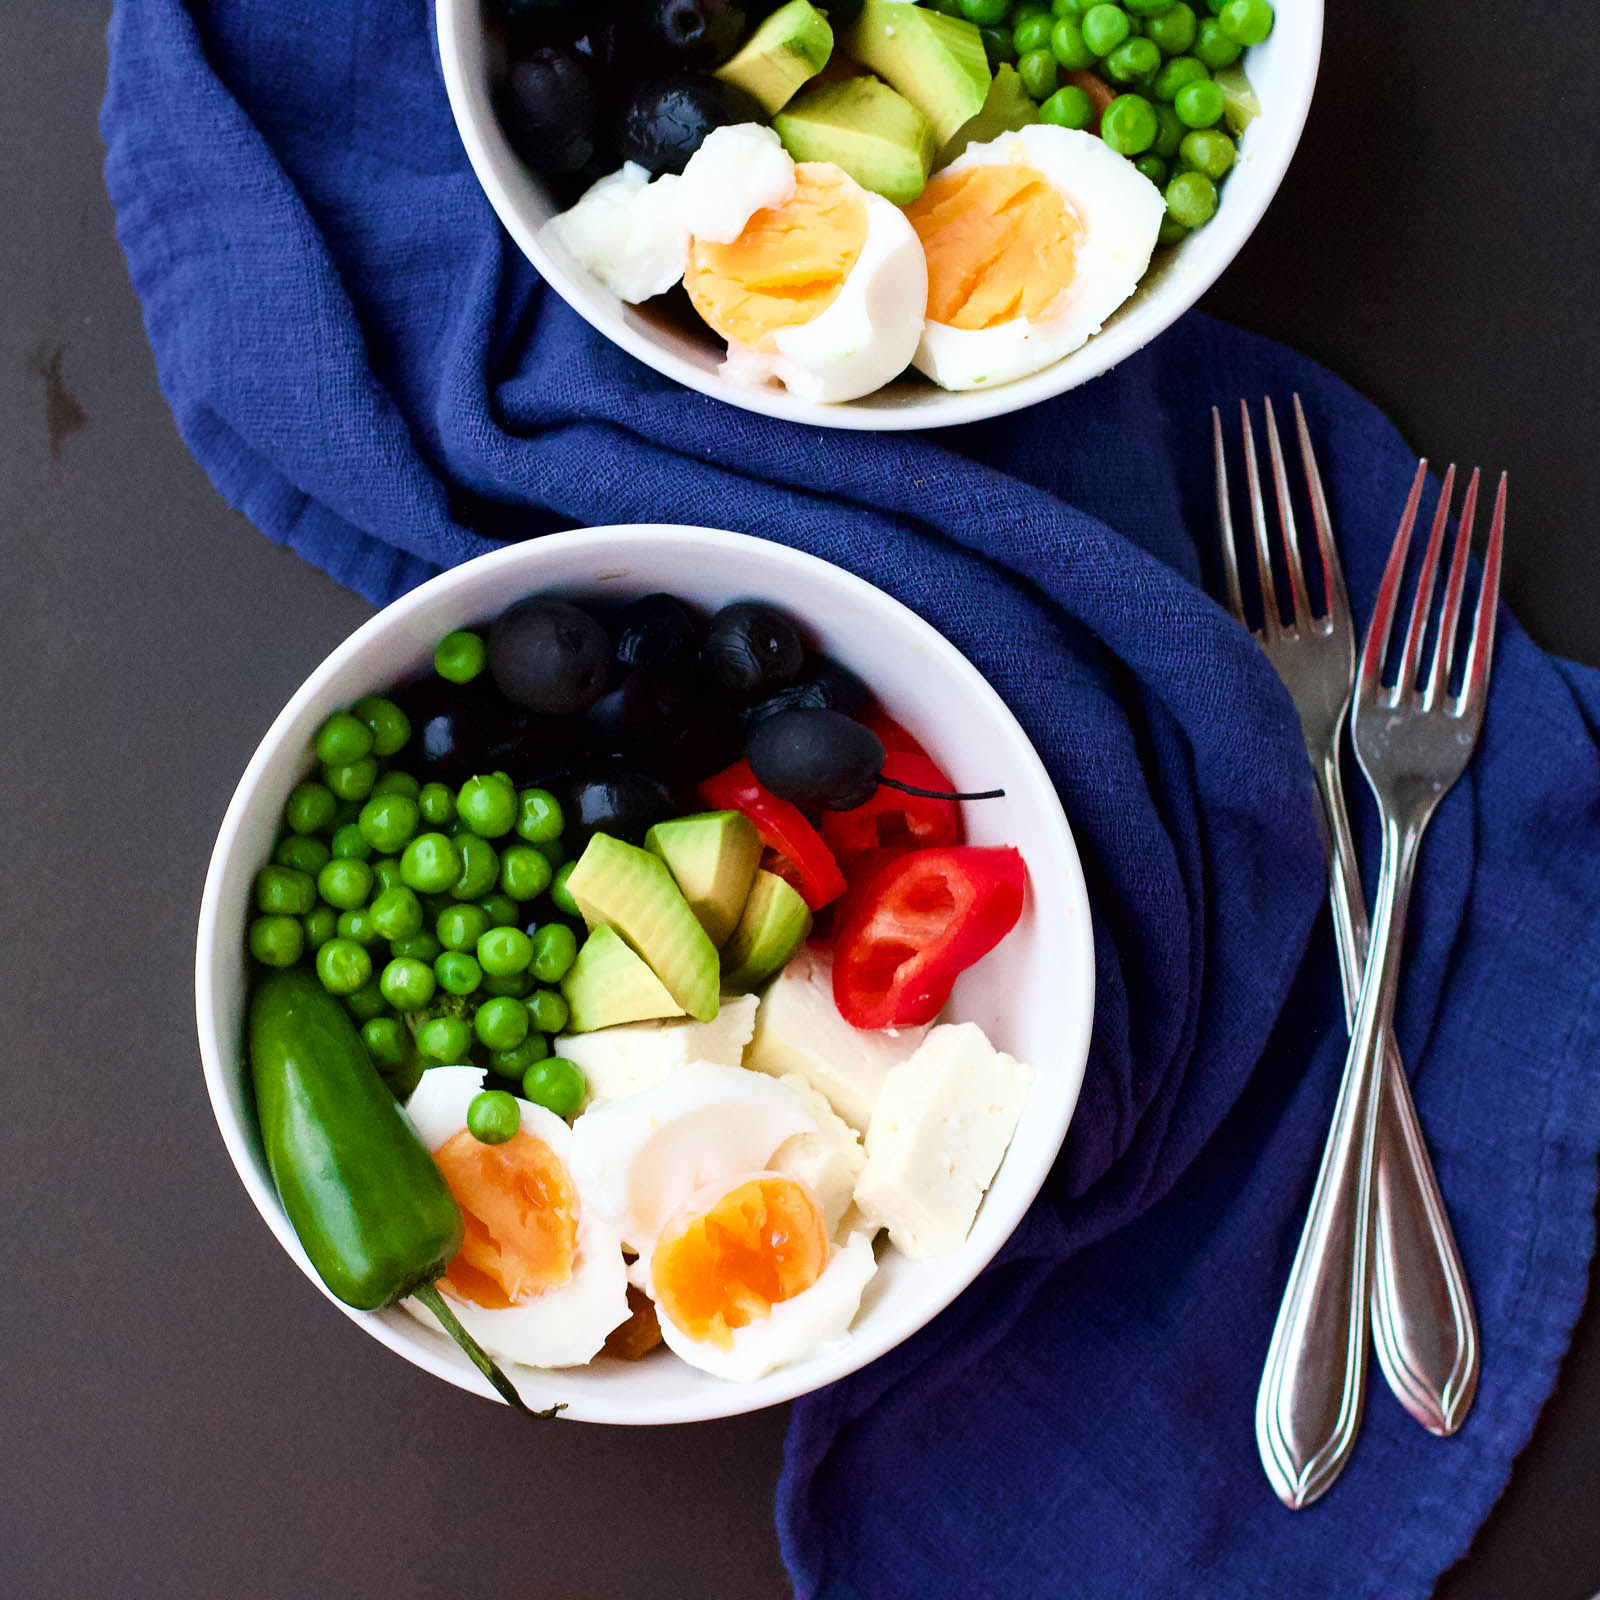 A Simple Guide to Healthy Food Choices - Vegetarian bowl with green peas, avocado, olives, red pepper, jalapeno, eggs and feta cheese.